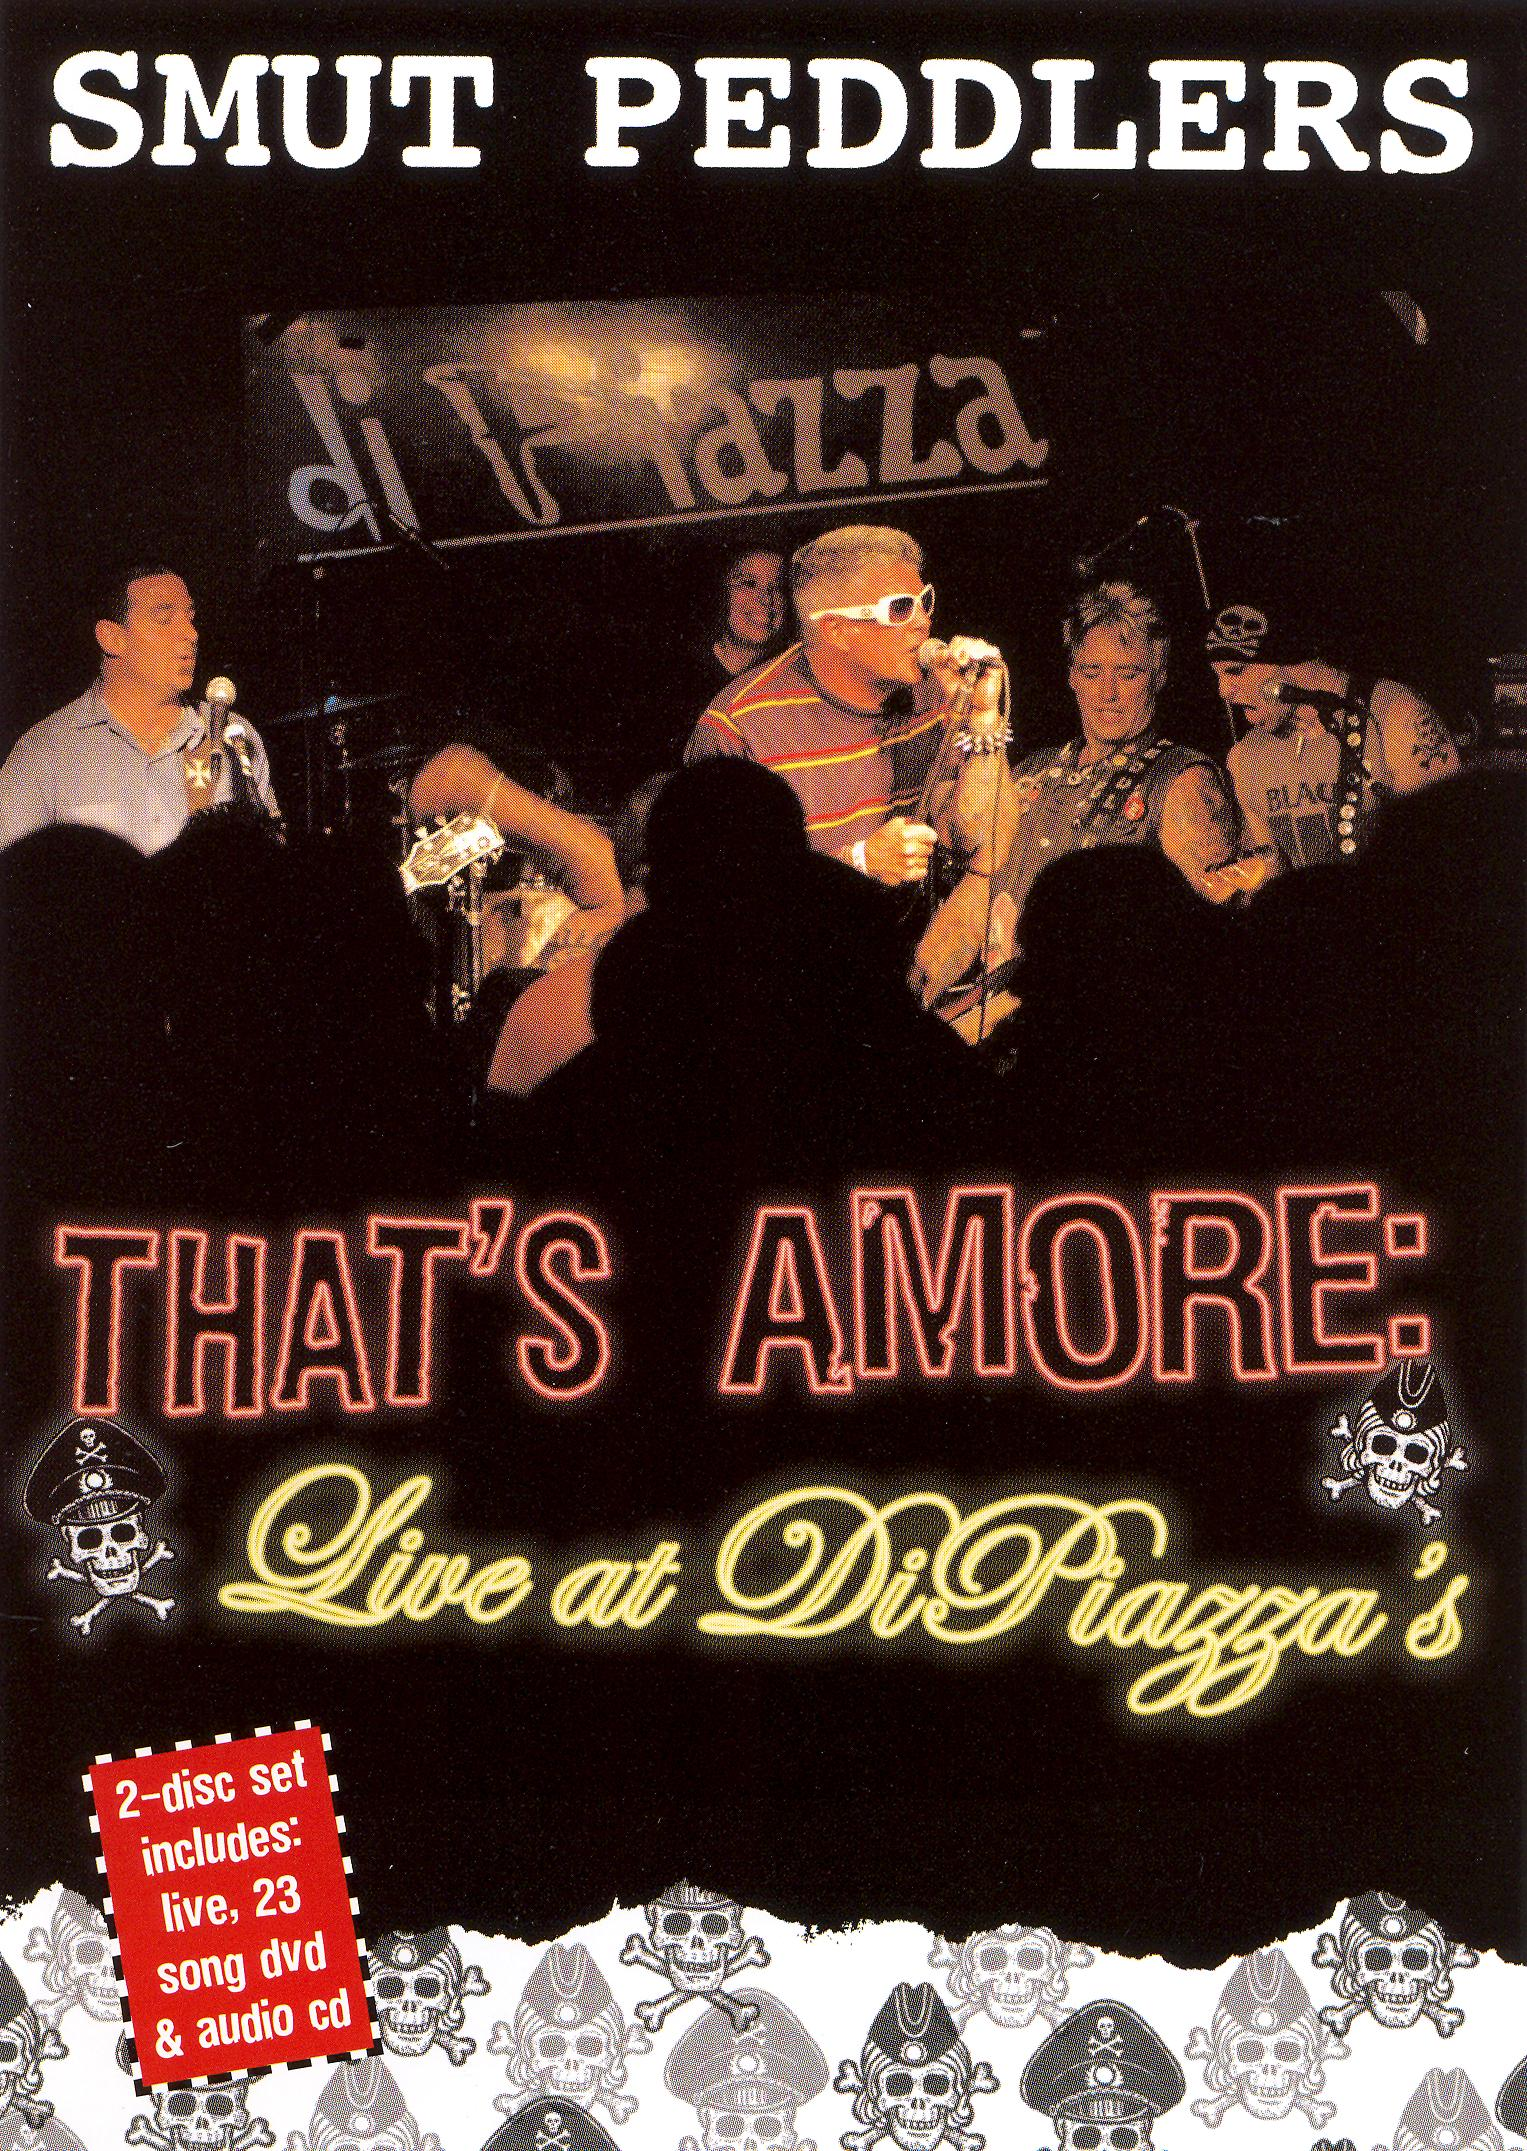 Smut Peddlers: That's Amore